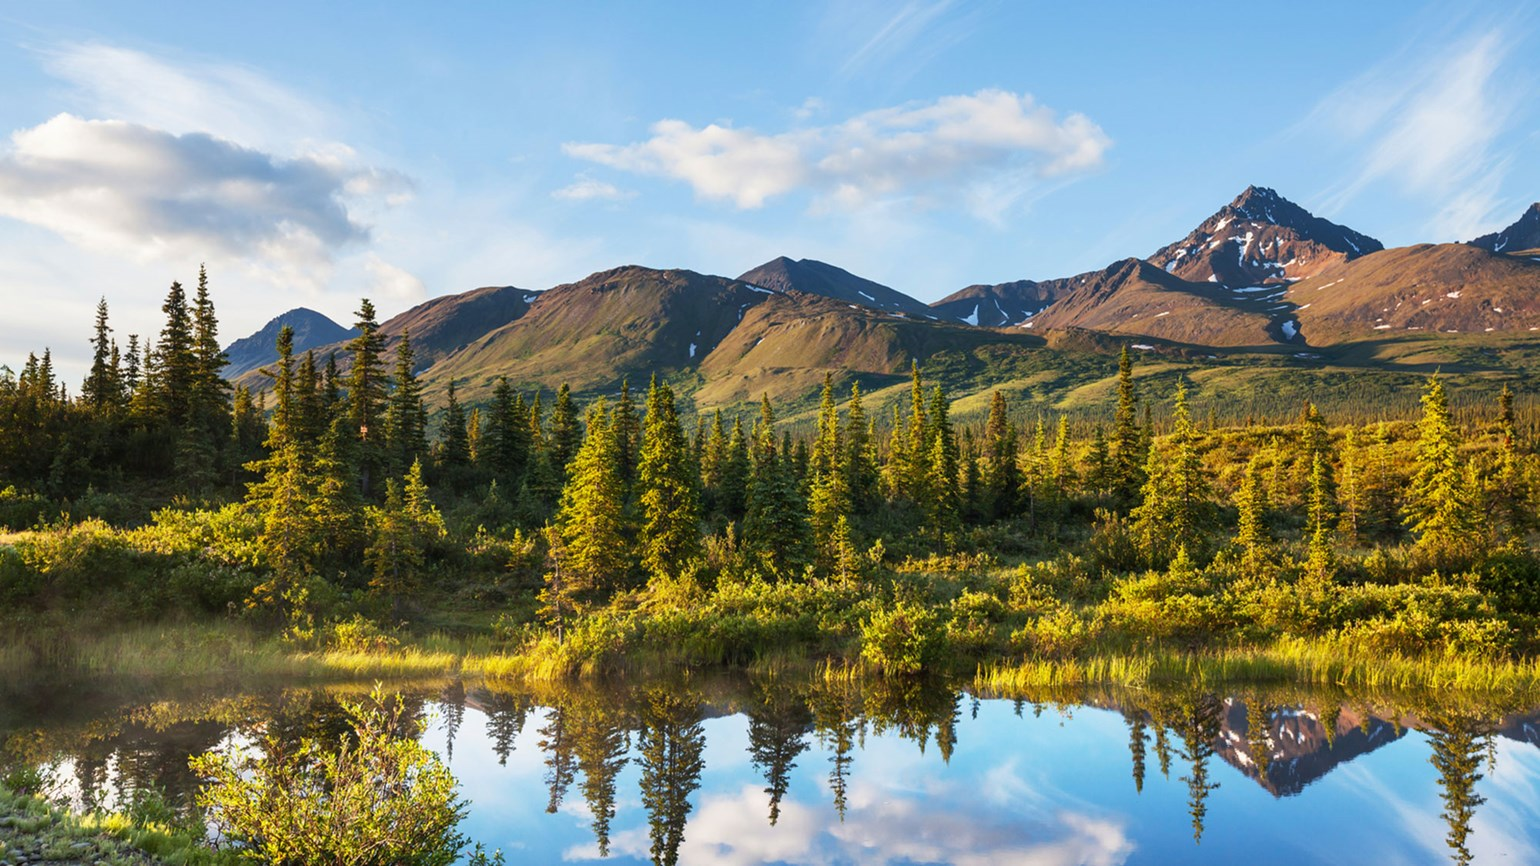 Domestic, distanced, outdoors: Alaska tours are a hot ticket